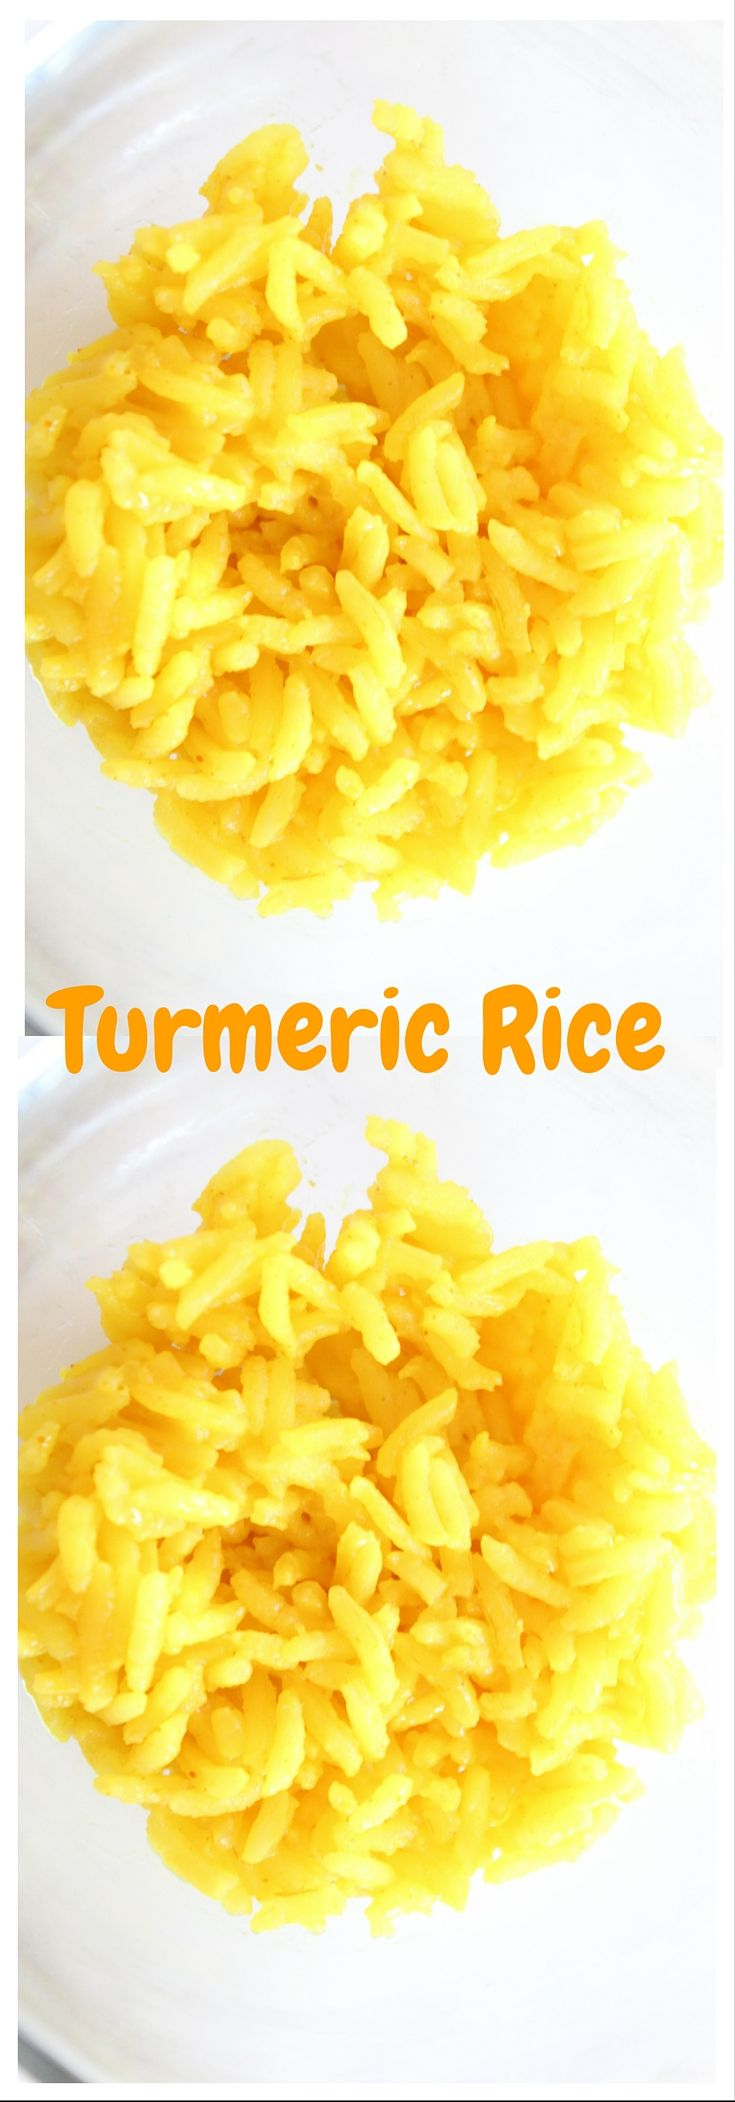 This turmeric rice is delicious with turmeric spice. Click here for this recipe or pin to save for later.